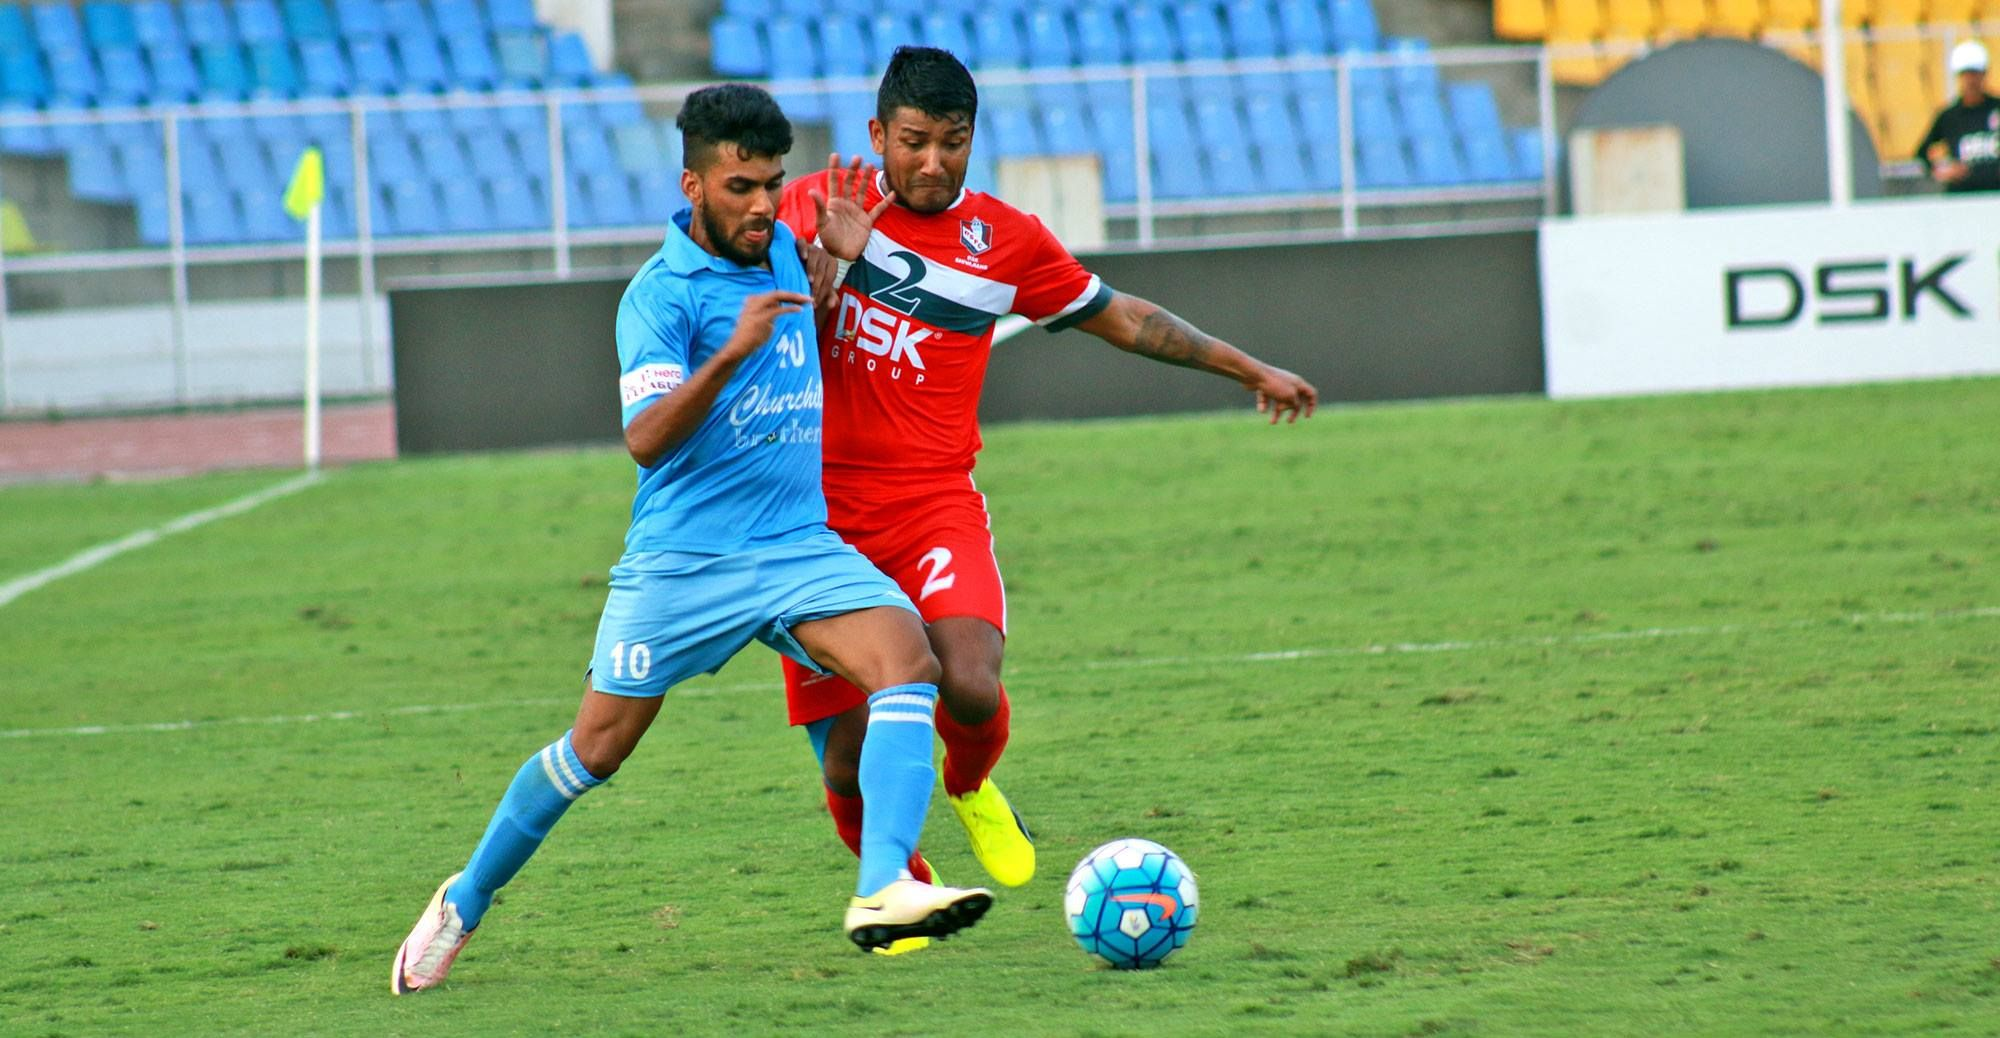 Brandon Fernandes (L) was Churchill's best player in the 2016-17 I-League season, with 3 goals and 7 assists to his name.